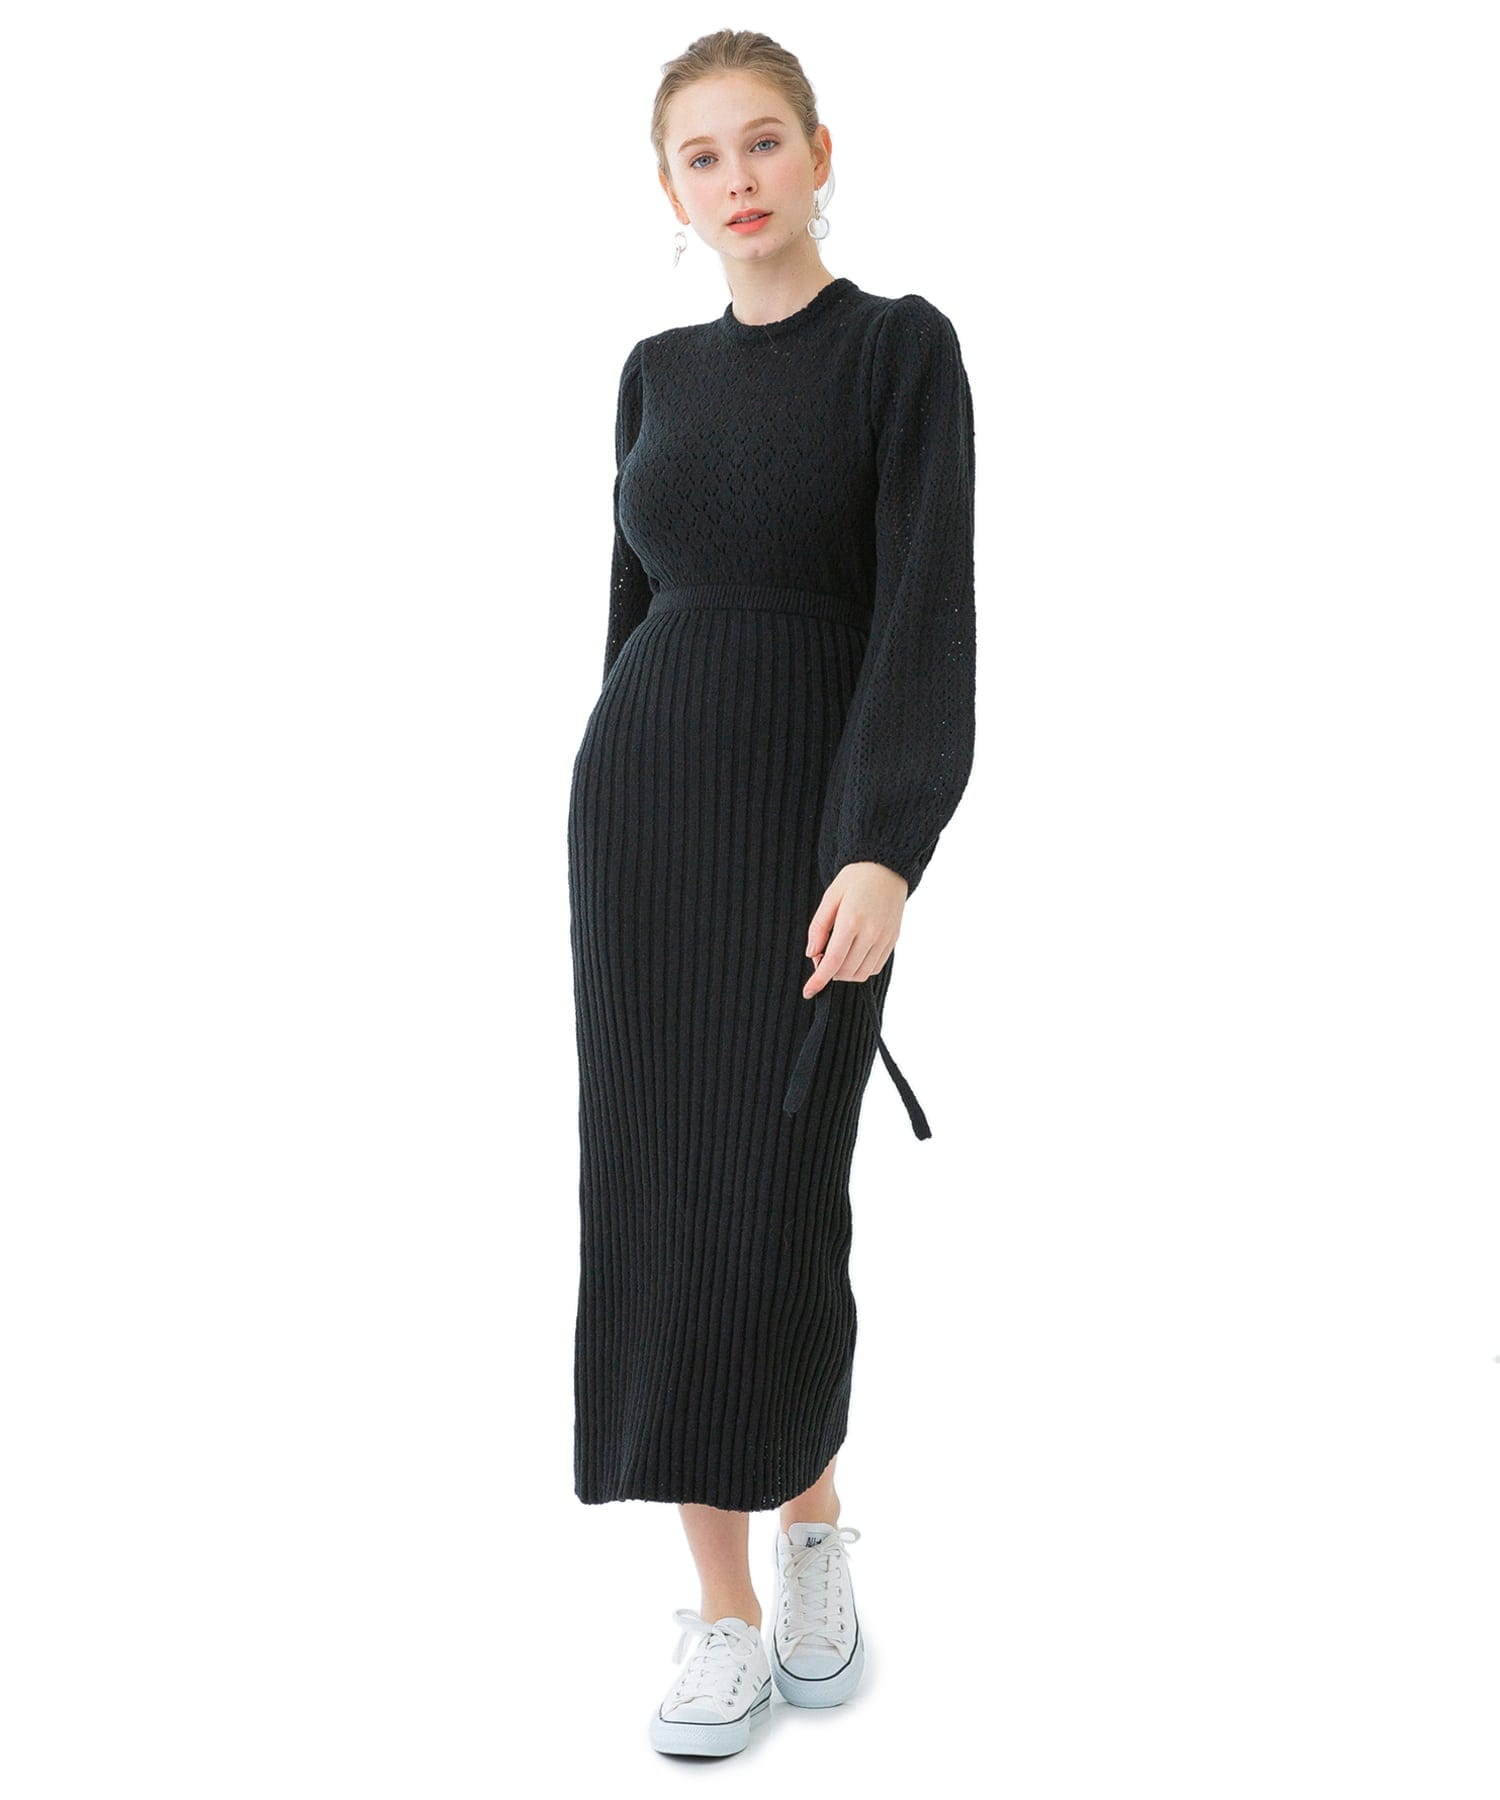 KNIT LONG DRESS HOLIDAY